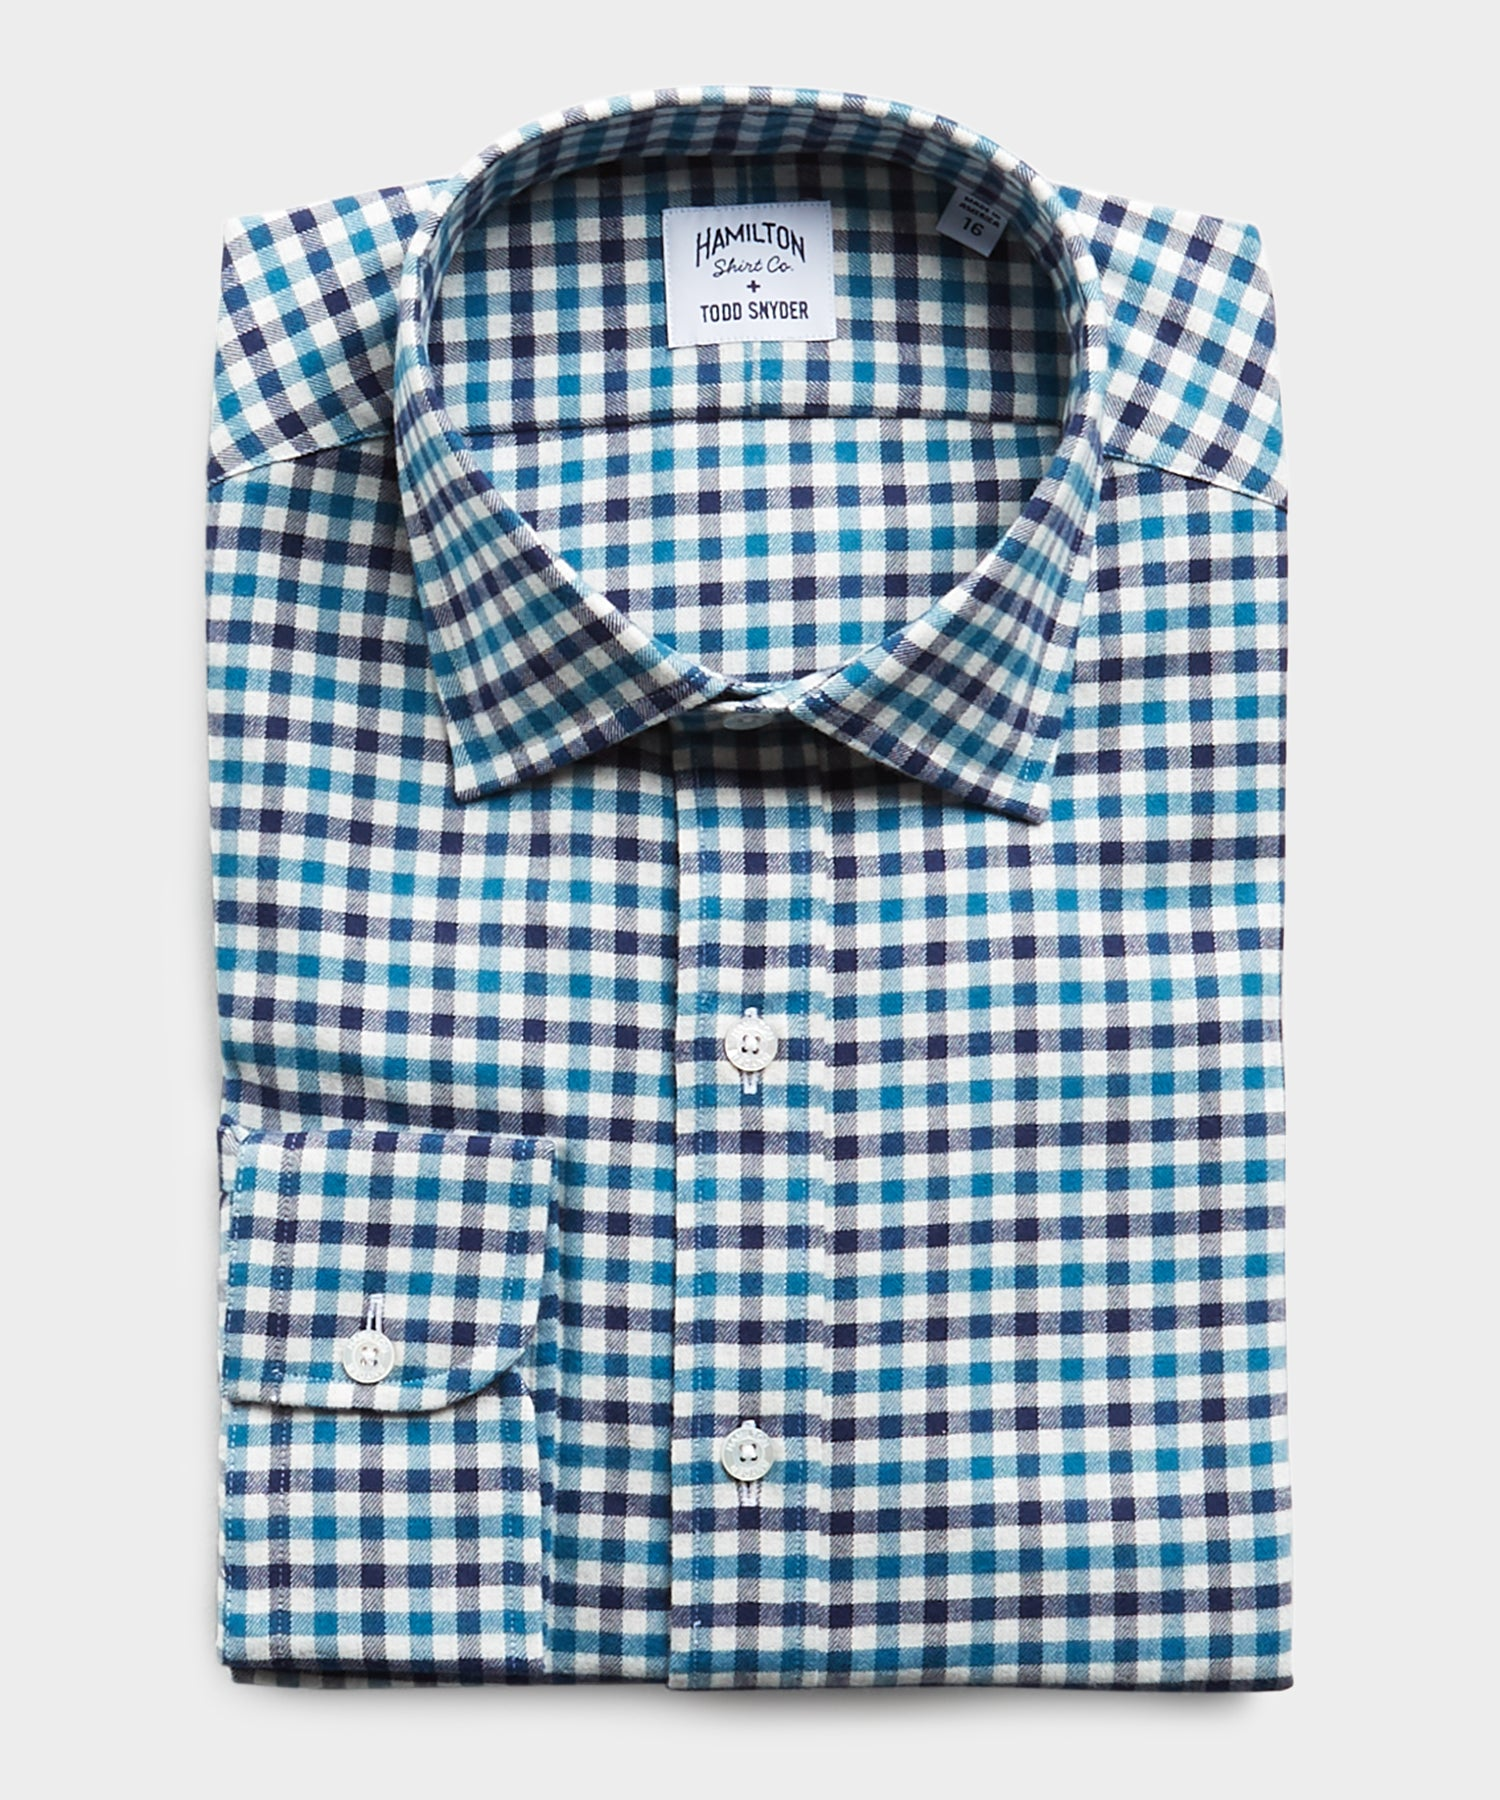 Made in USA Hamilton + Todd Snyder Brushed Twill Gingham Dress Shirt